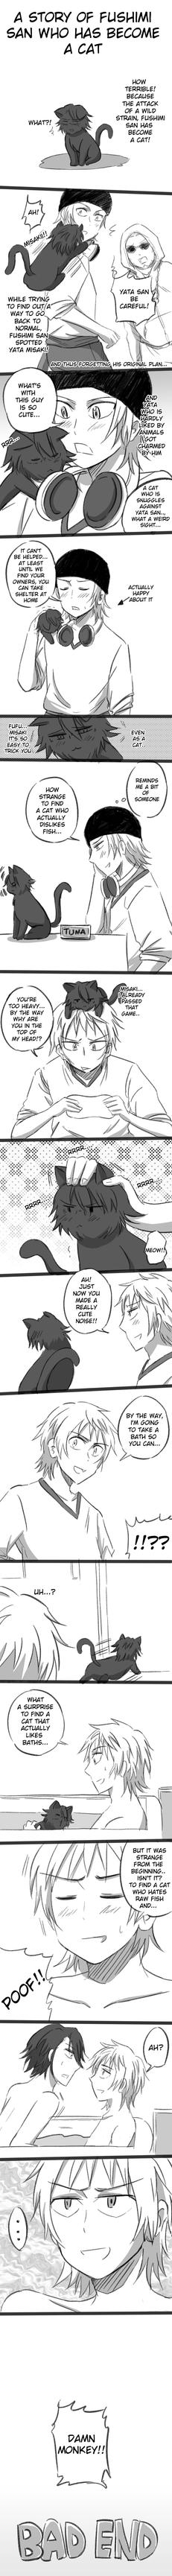 Sarumi: A story of Fushimi san who became a cat by kaguya-lamperouge